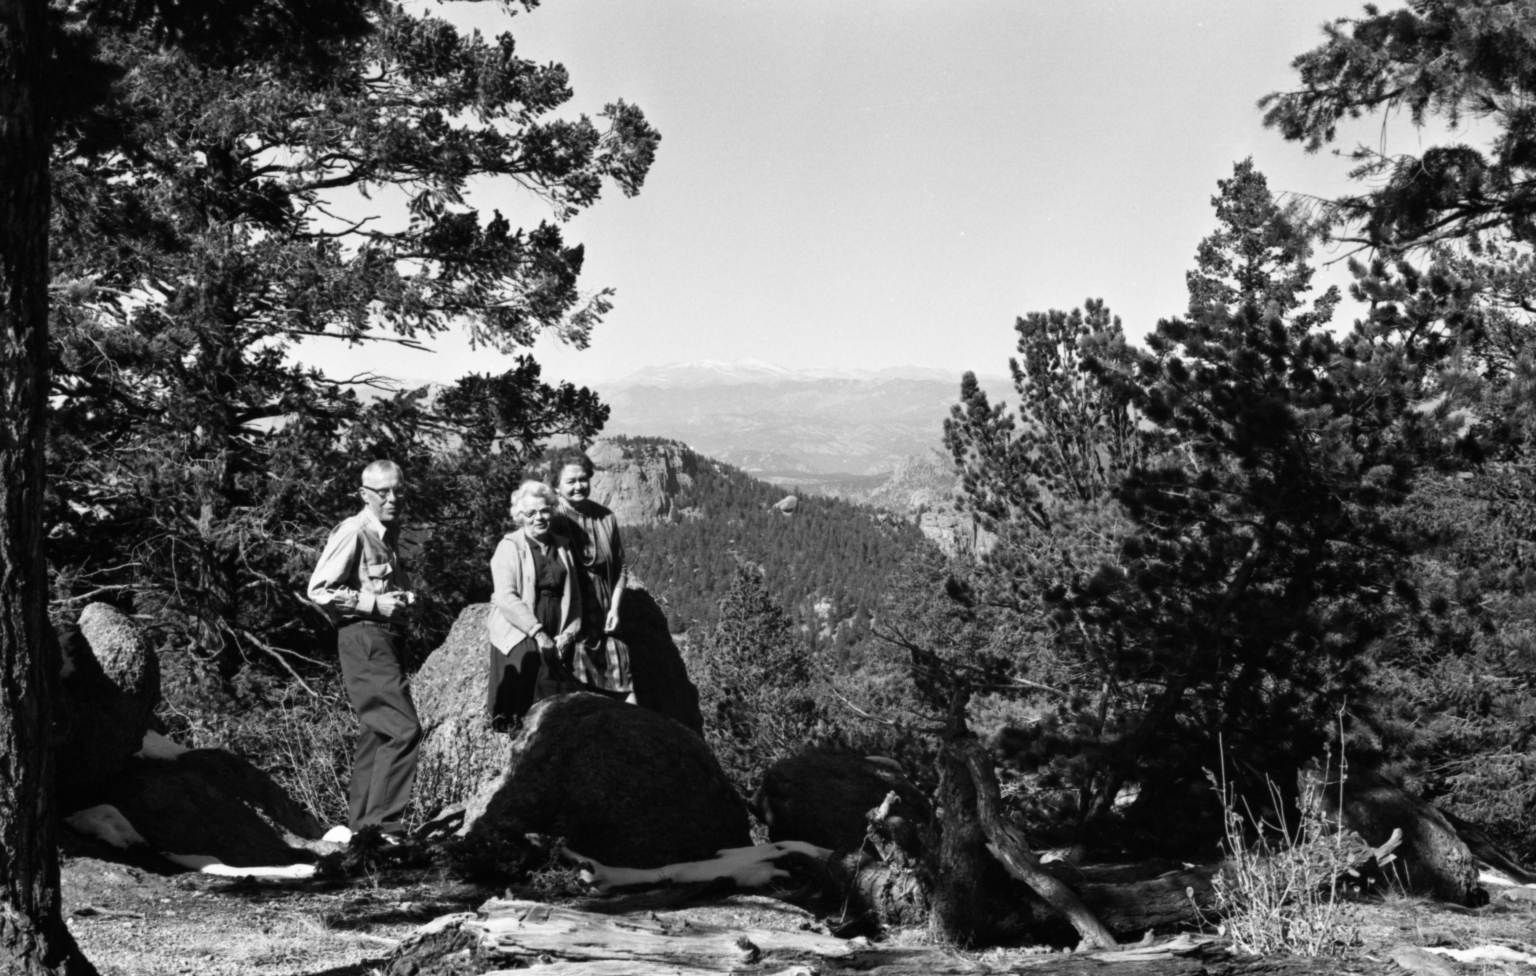 People with Pine Trees